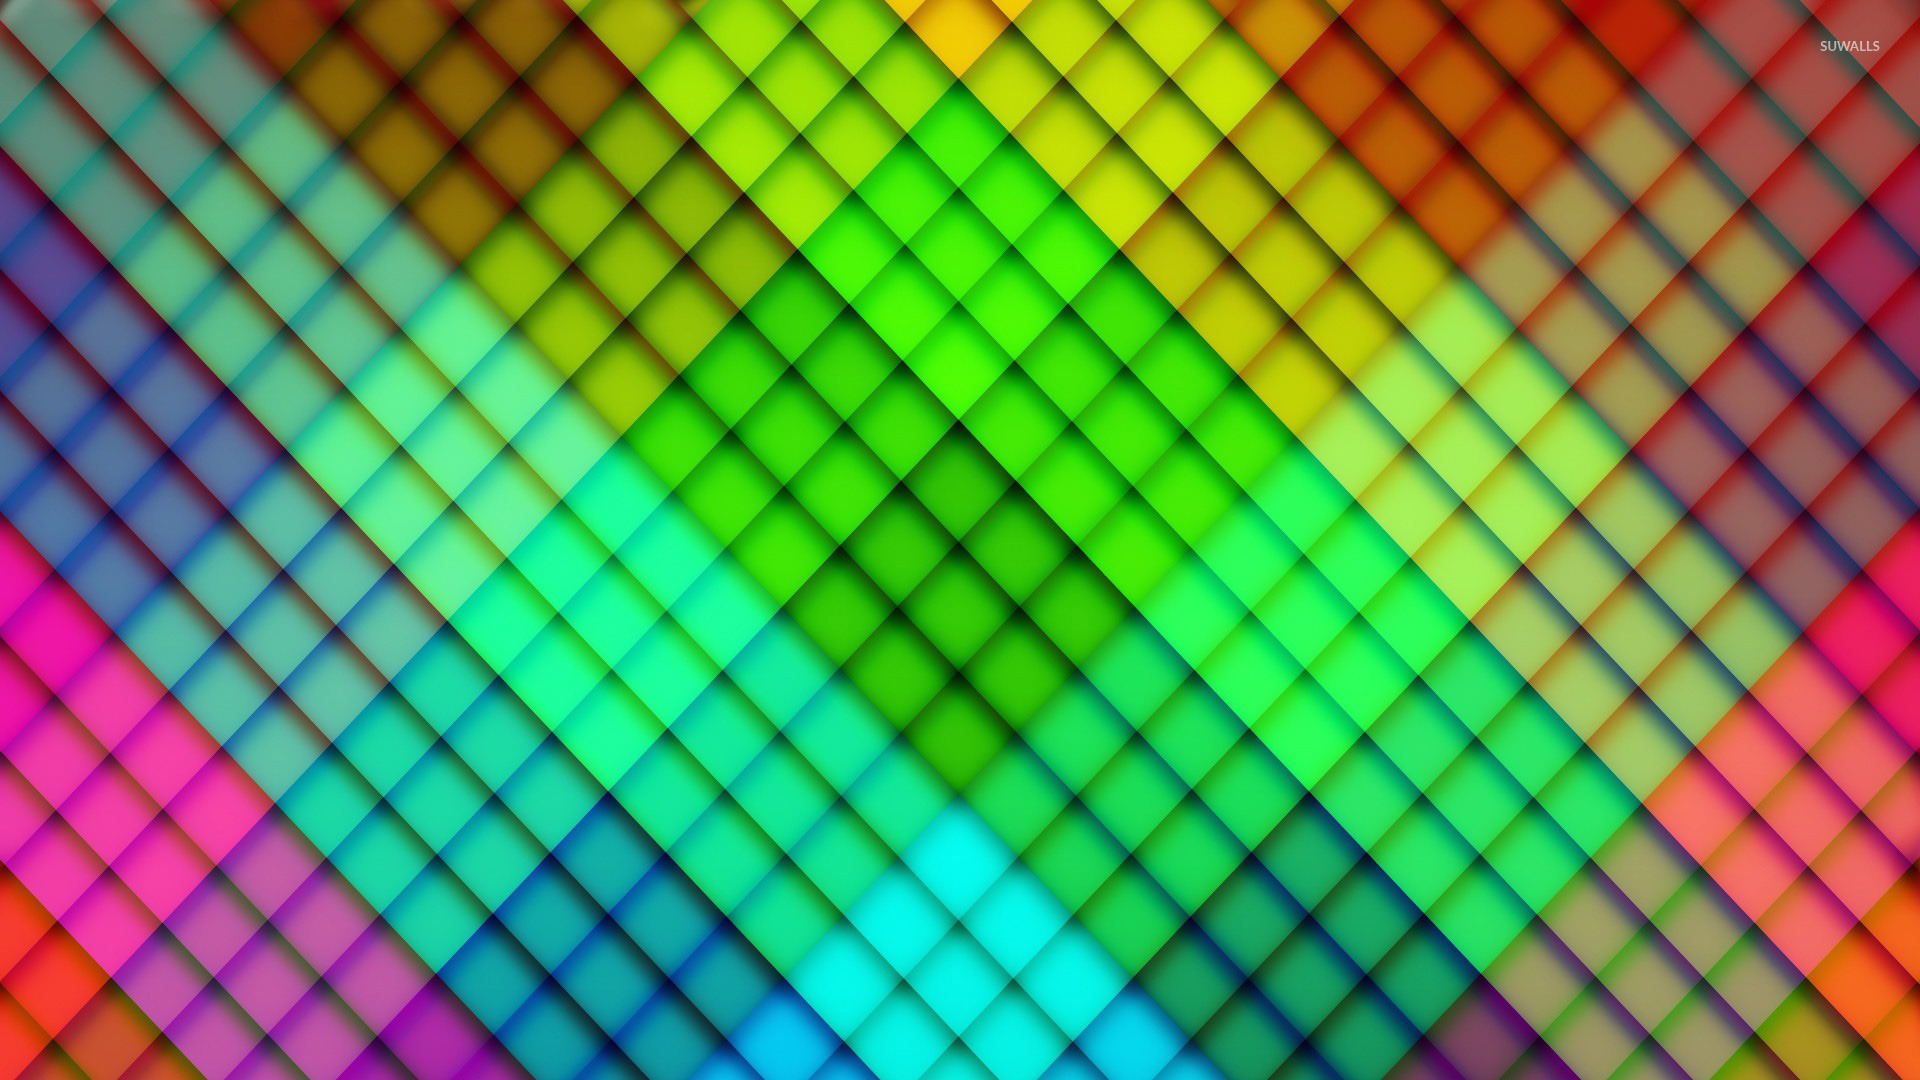 Abstract-Diamond-Shapes-Colorful-Pattern-iPhone-wallpaper-wp3602176